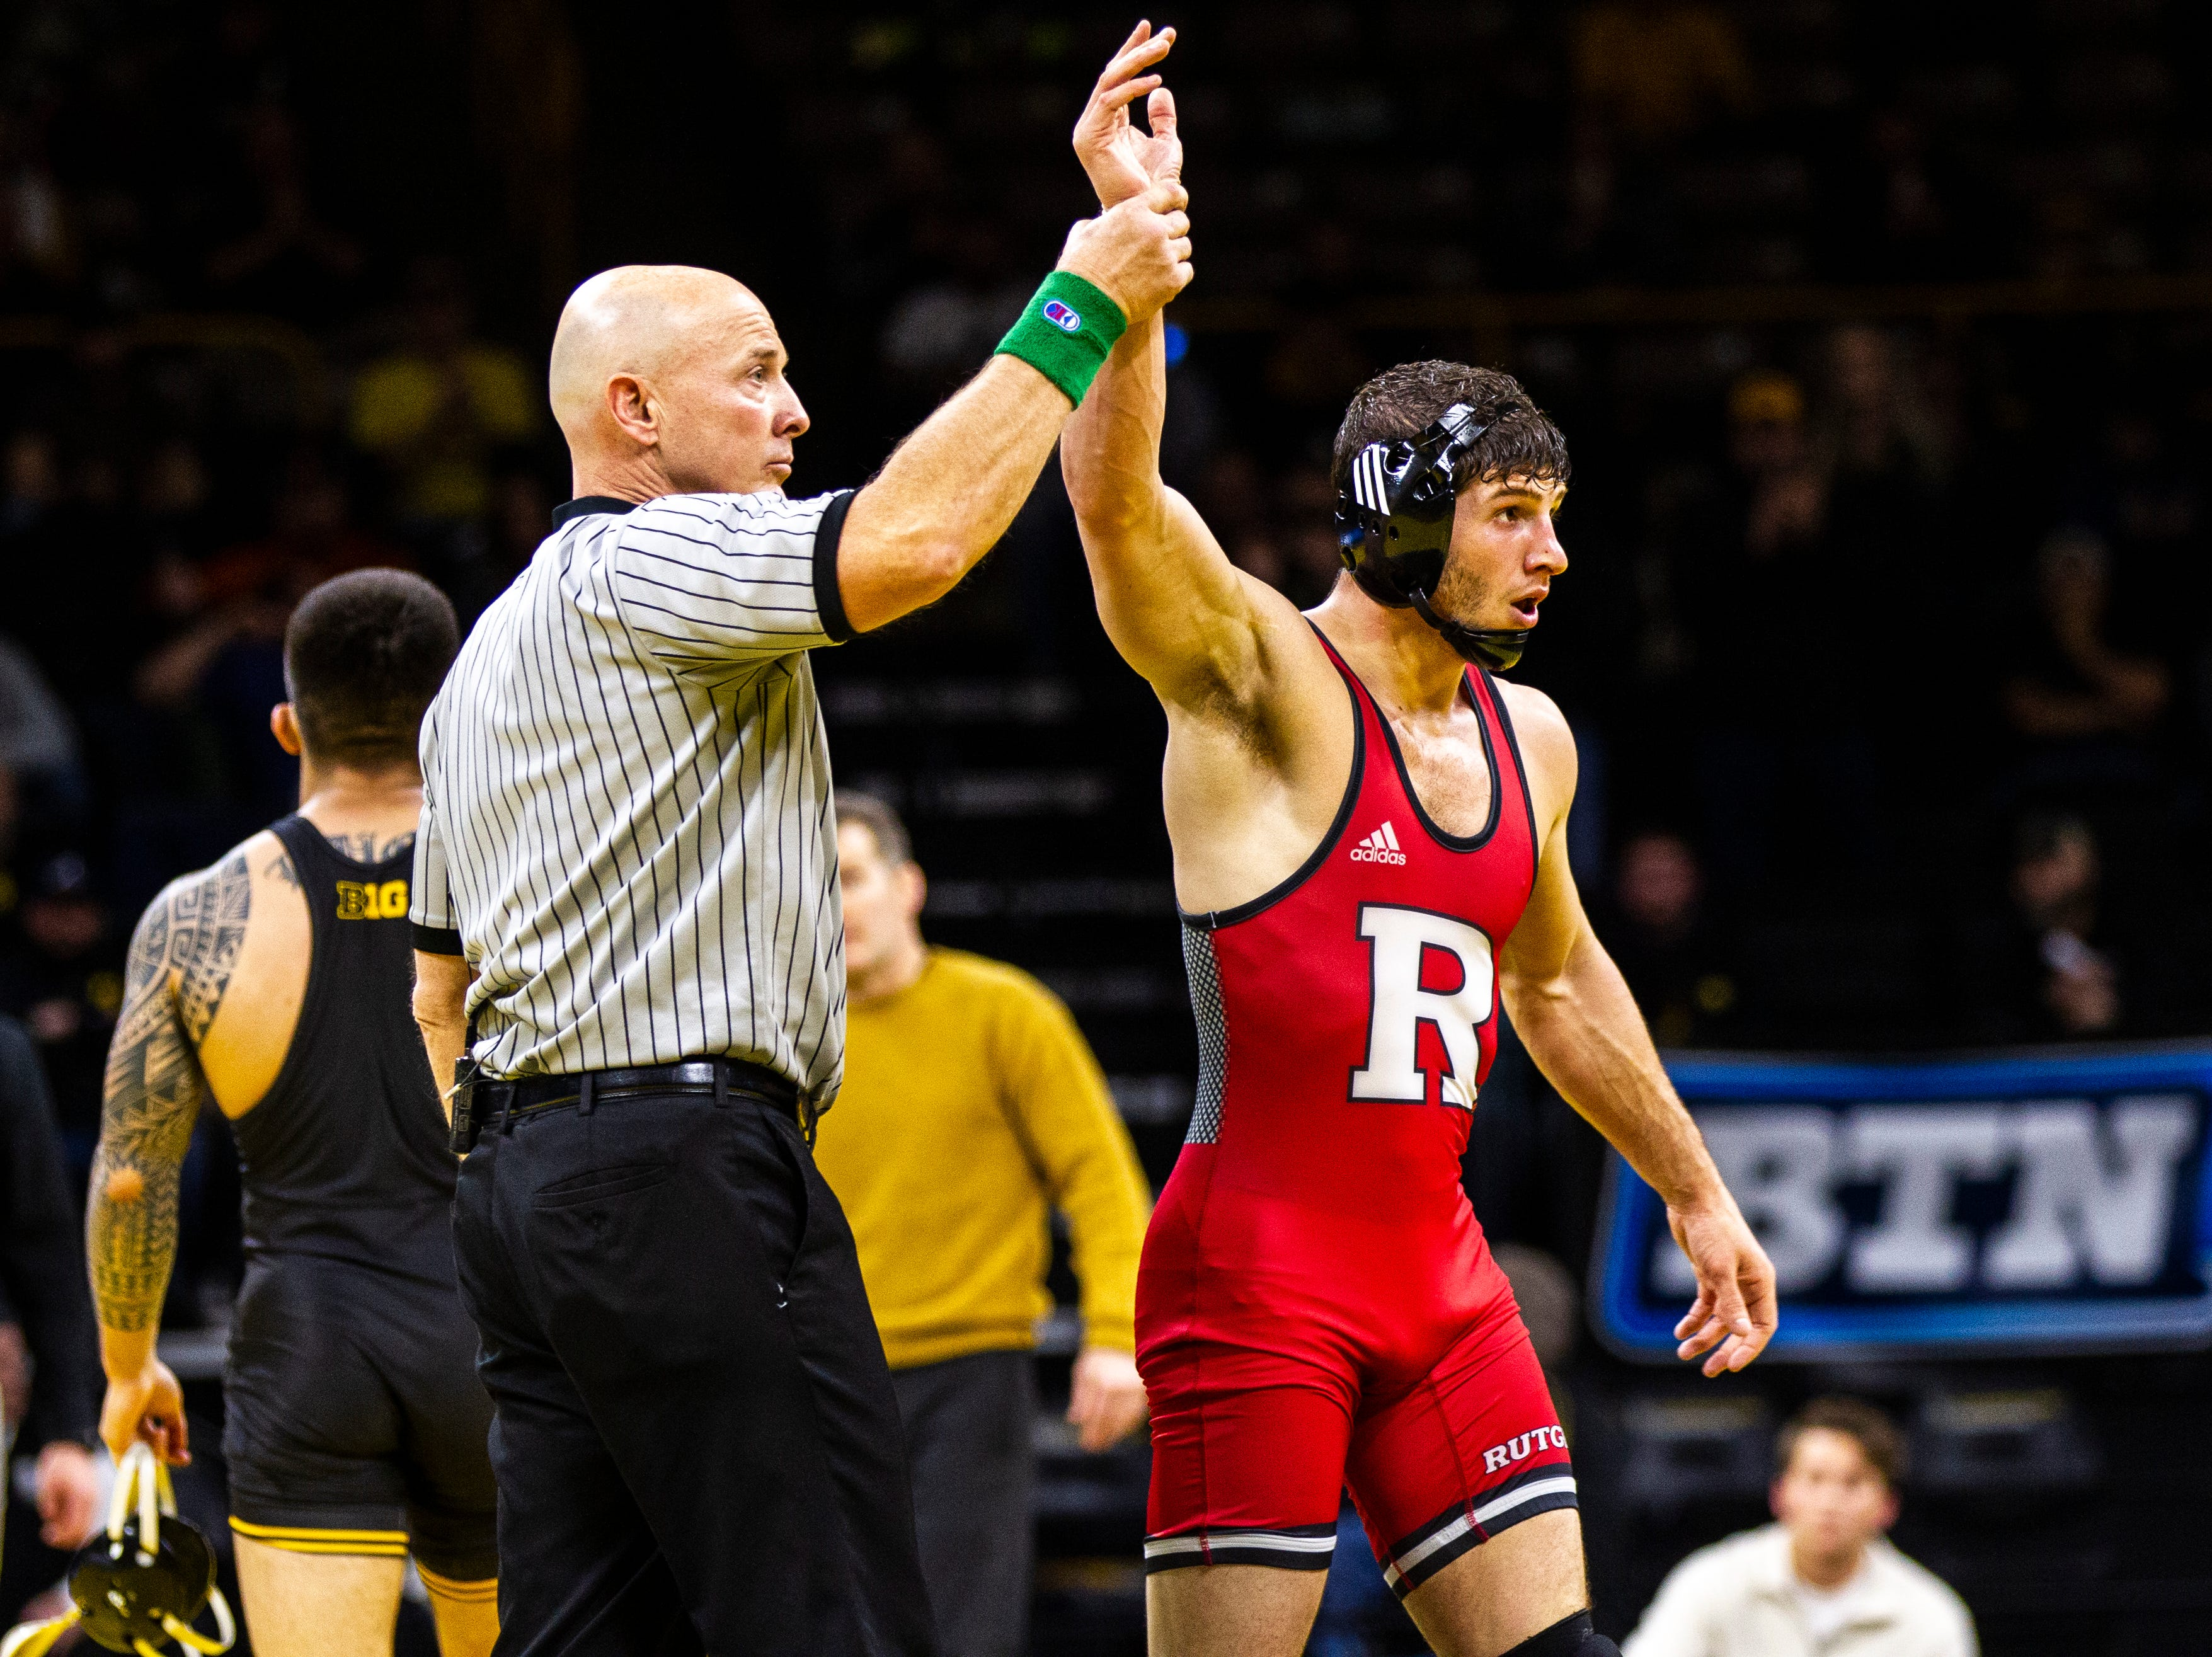 Rutgers' Anthony Ashnault has his arm raised after scoring a decision over Iowa's Pat Lugo  at 149 during a NCAA Big Ten Conference wrestling dual on Friday, Jan. 18, 2019, at Carver-Hawkeye Arena in Iowa City, Iowa.